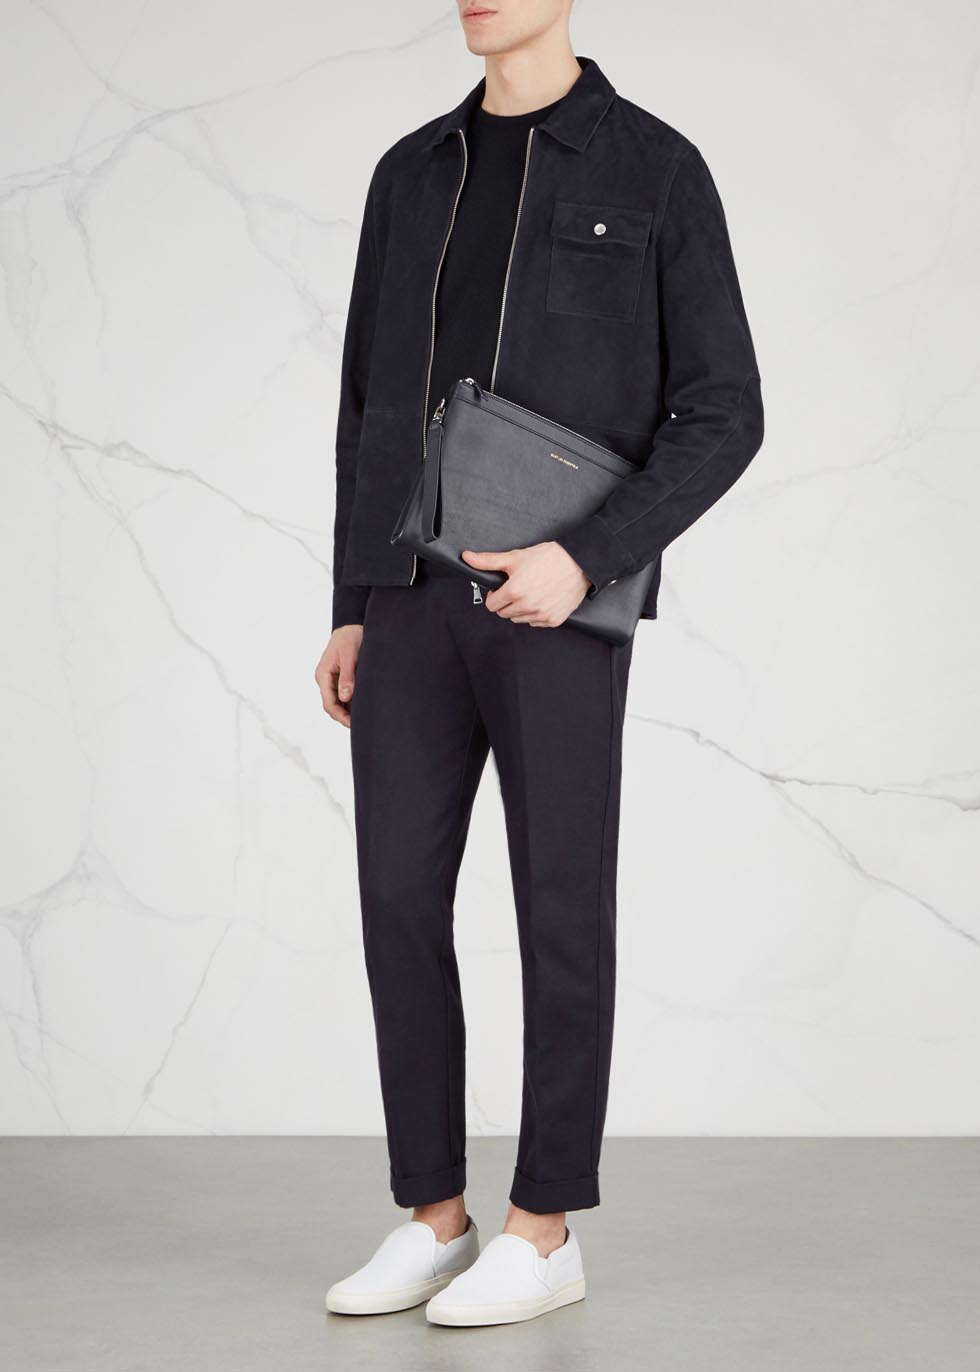 Barajas navy leather and canvas pouch - WANT Les Essentiels